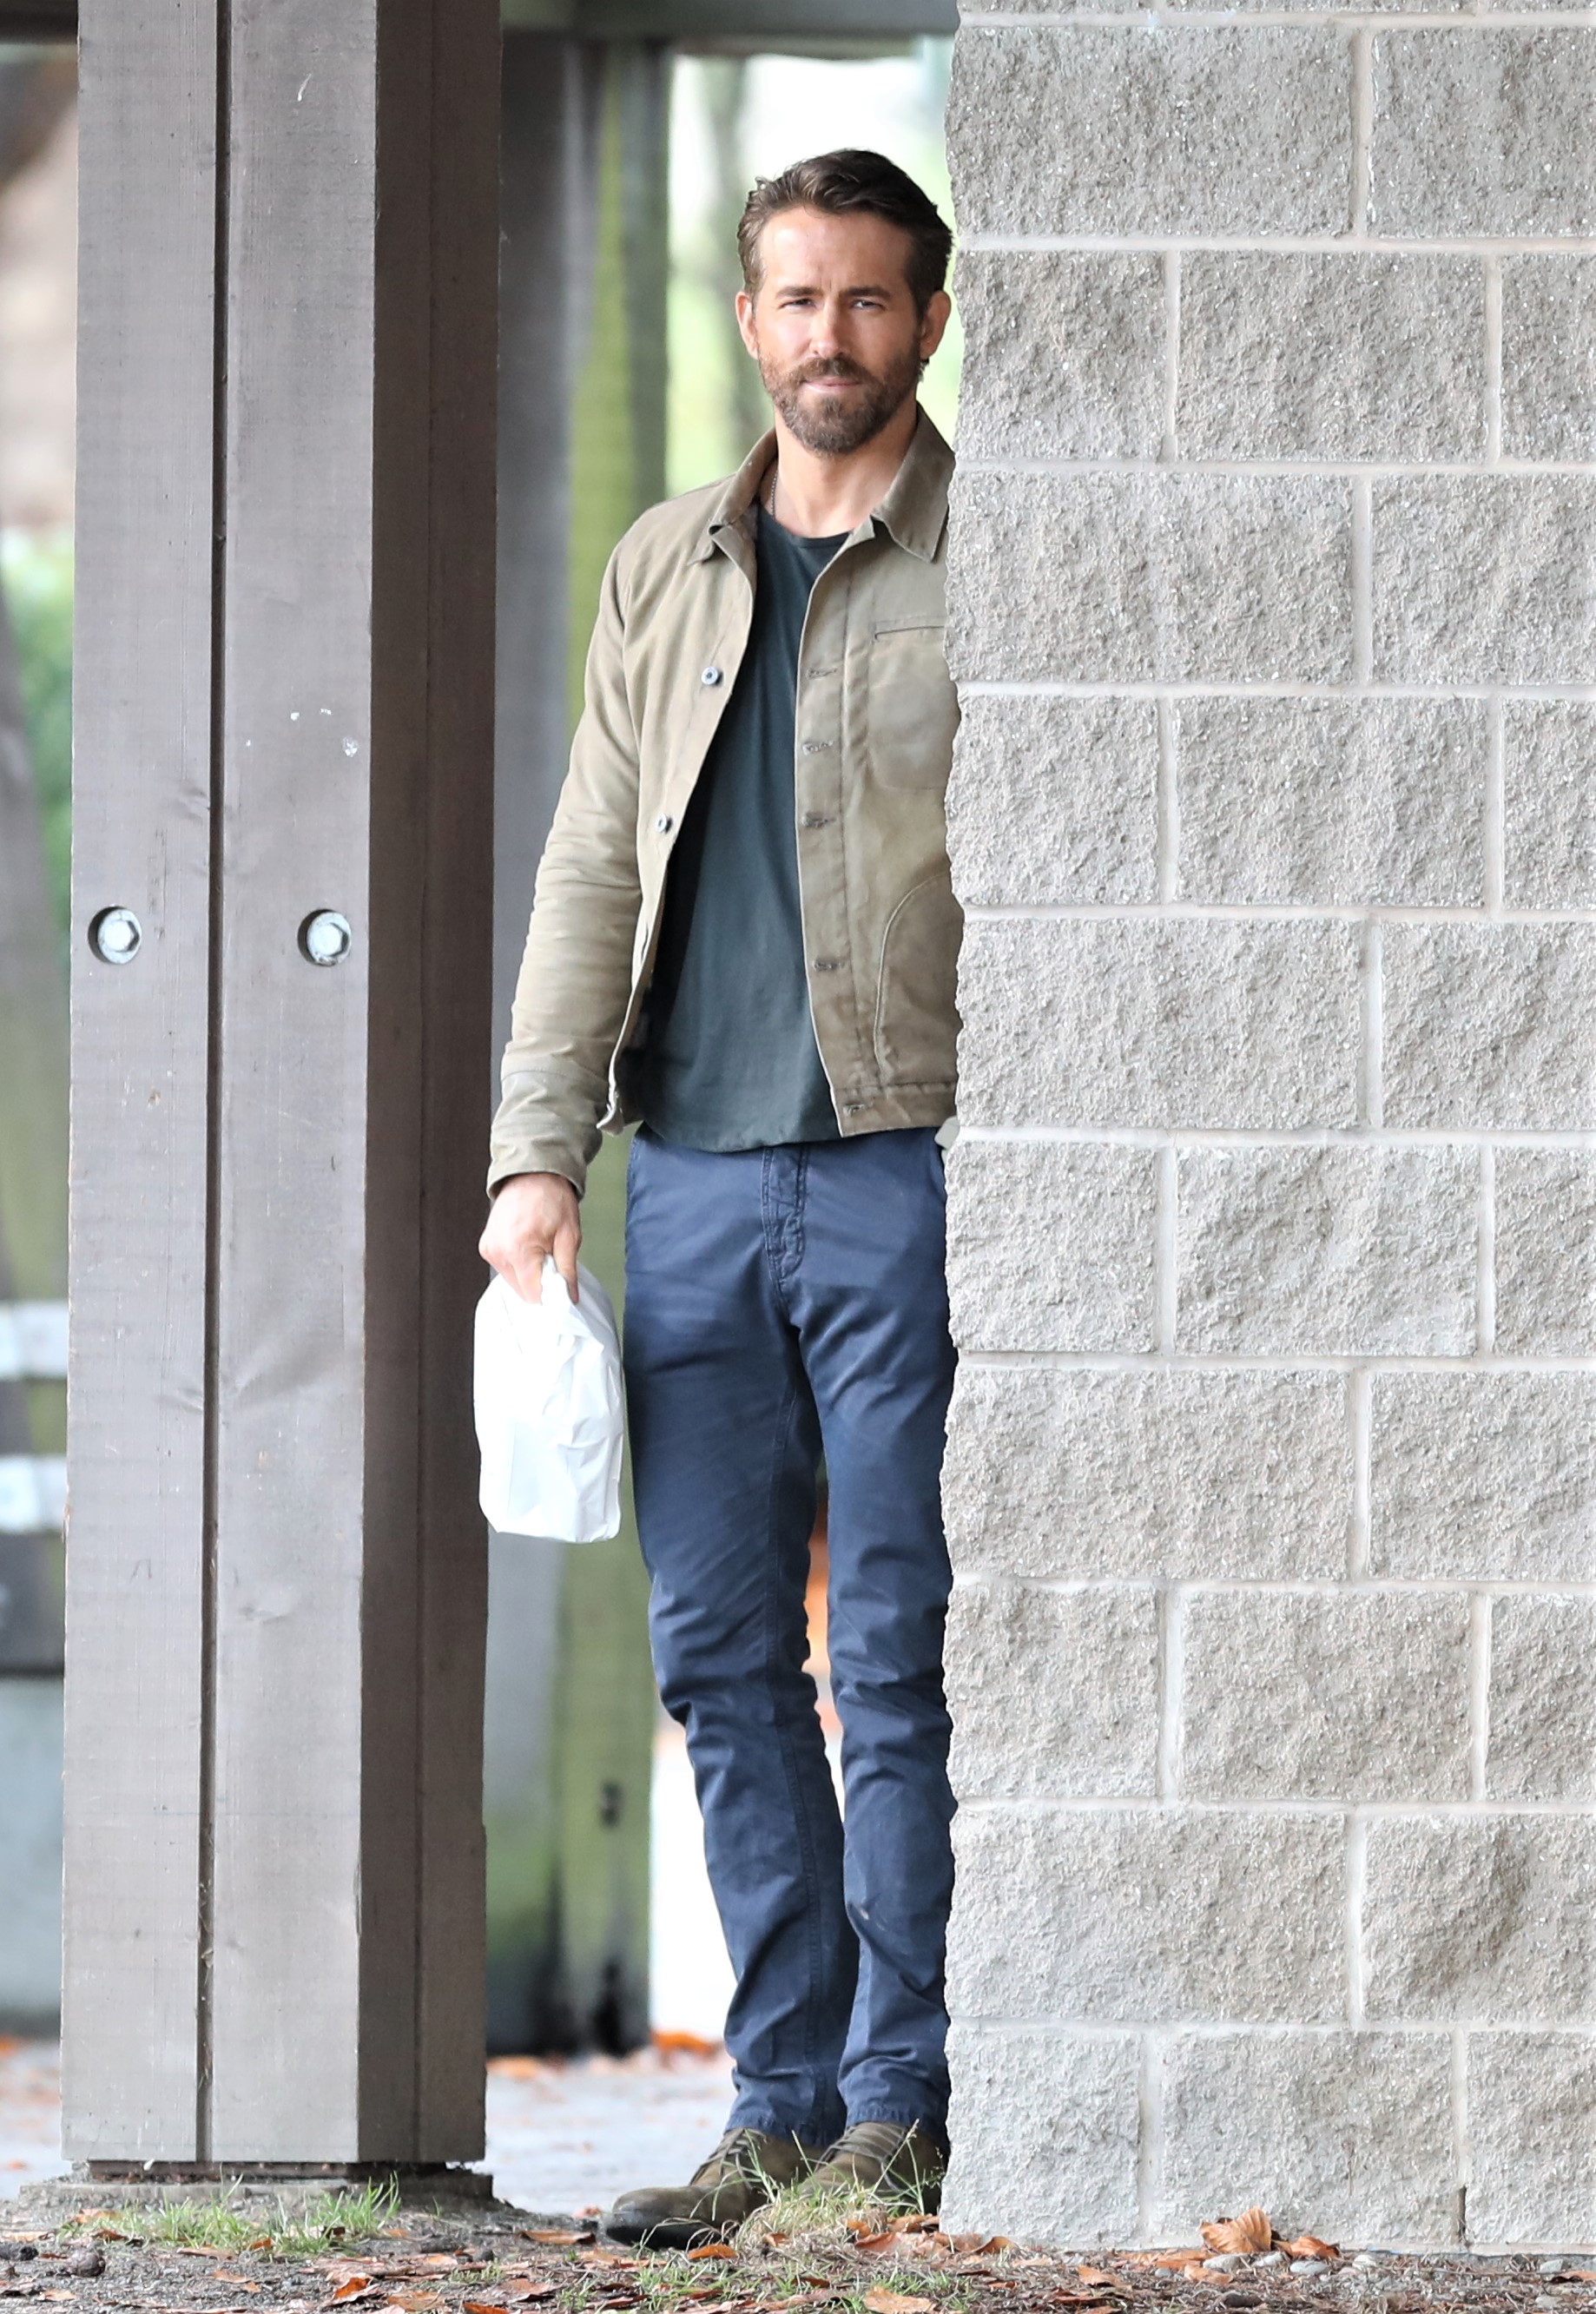 EXCLUSIVE: FIRST LOOK!  Ryan Reynolds is spotted on the set of his new Netflix movie, 'The Adam Project' in Vancouver, Canada.